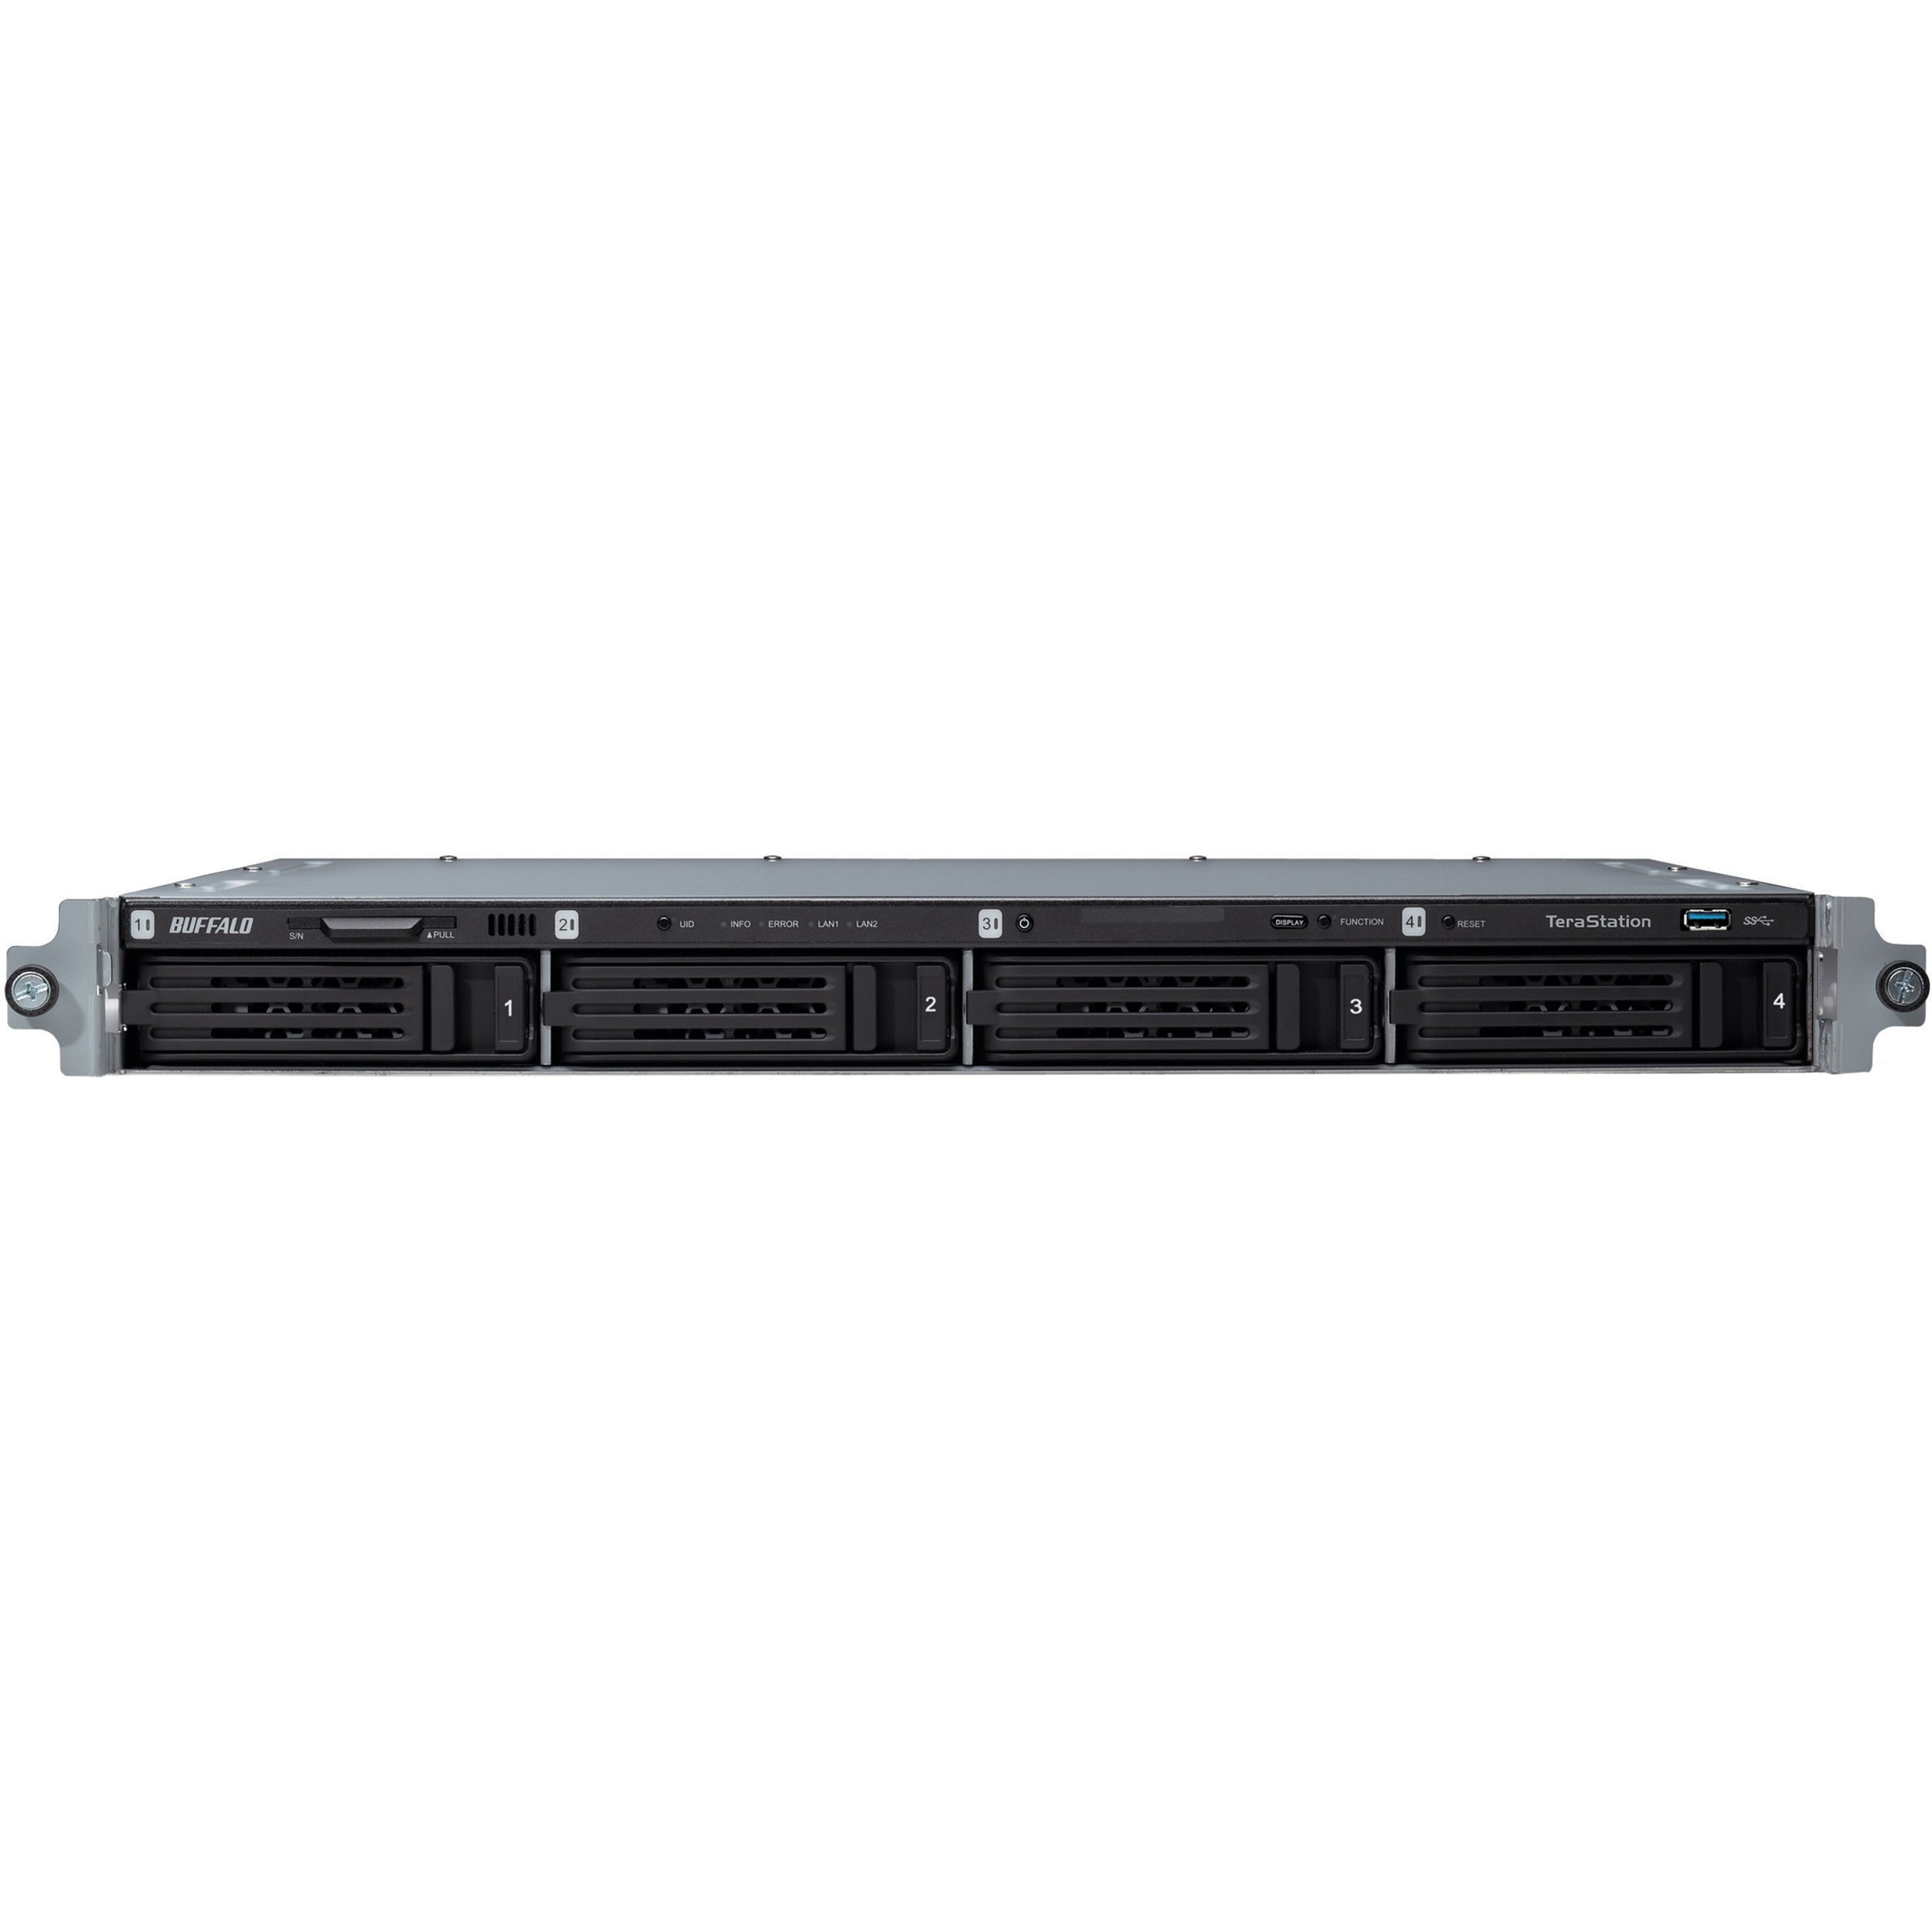 Buffalo TeraStation TS5400RWR1604 4 x Total Bays NAS Server - 1U - Rack-mountable - 1 x Intel Atom D2700 Dual-core 2 Core 2.13 GHz - 16 TB HDD 4 x 4 TB - 2 GB RA